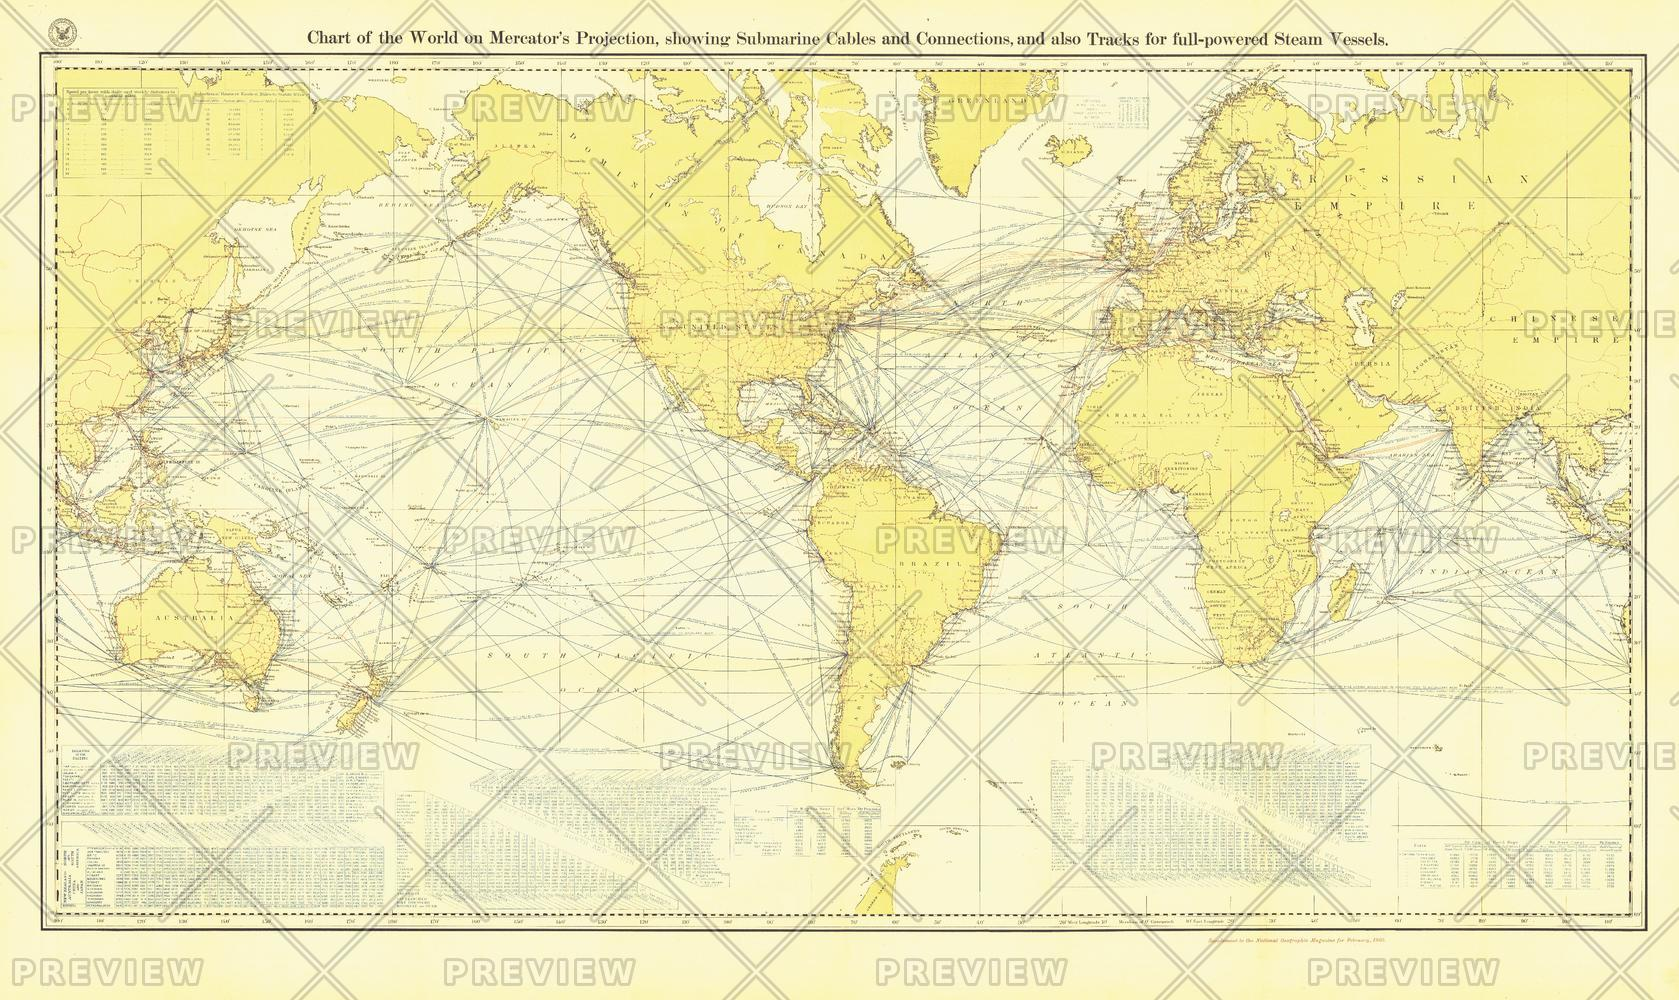 Chart of the World on Mercator's Projection - Published 1905